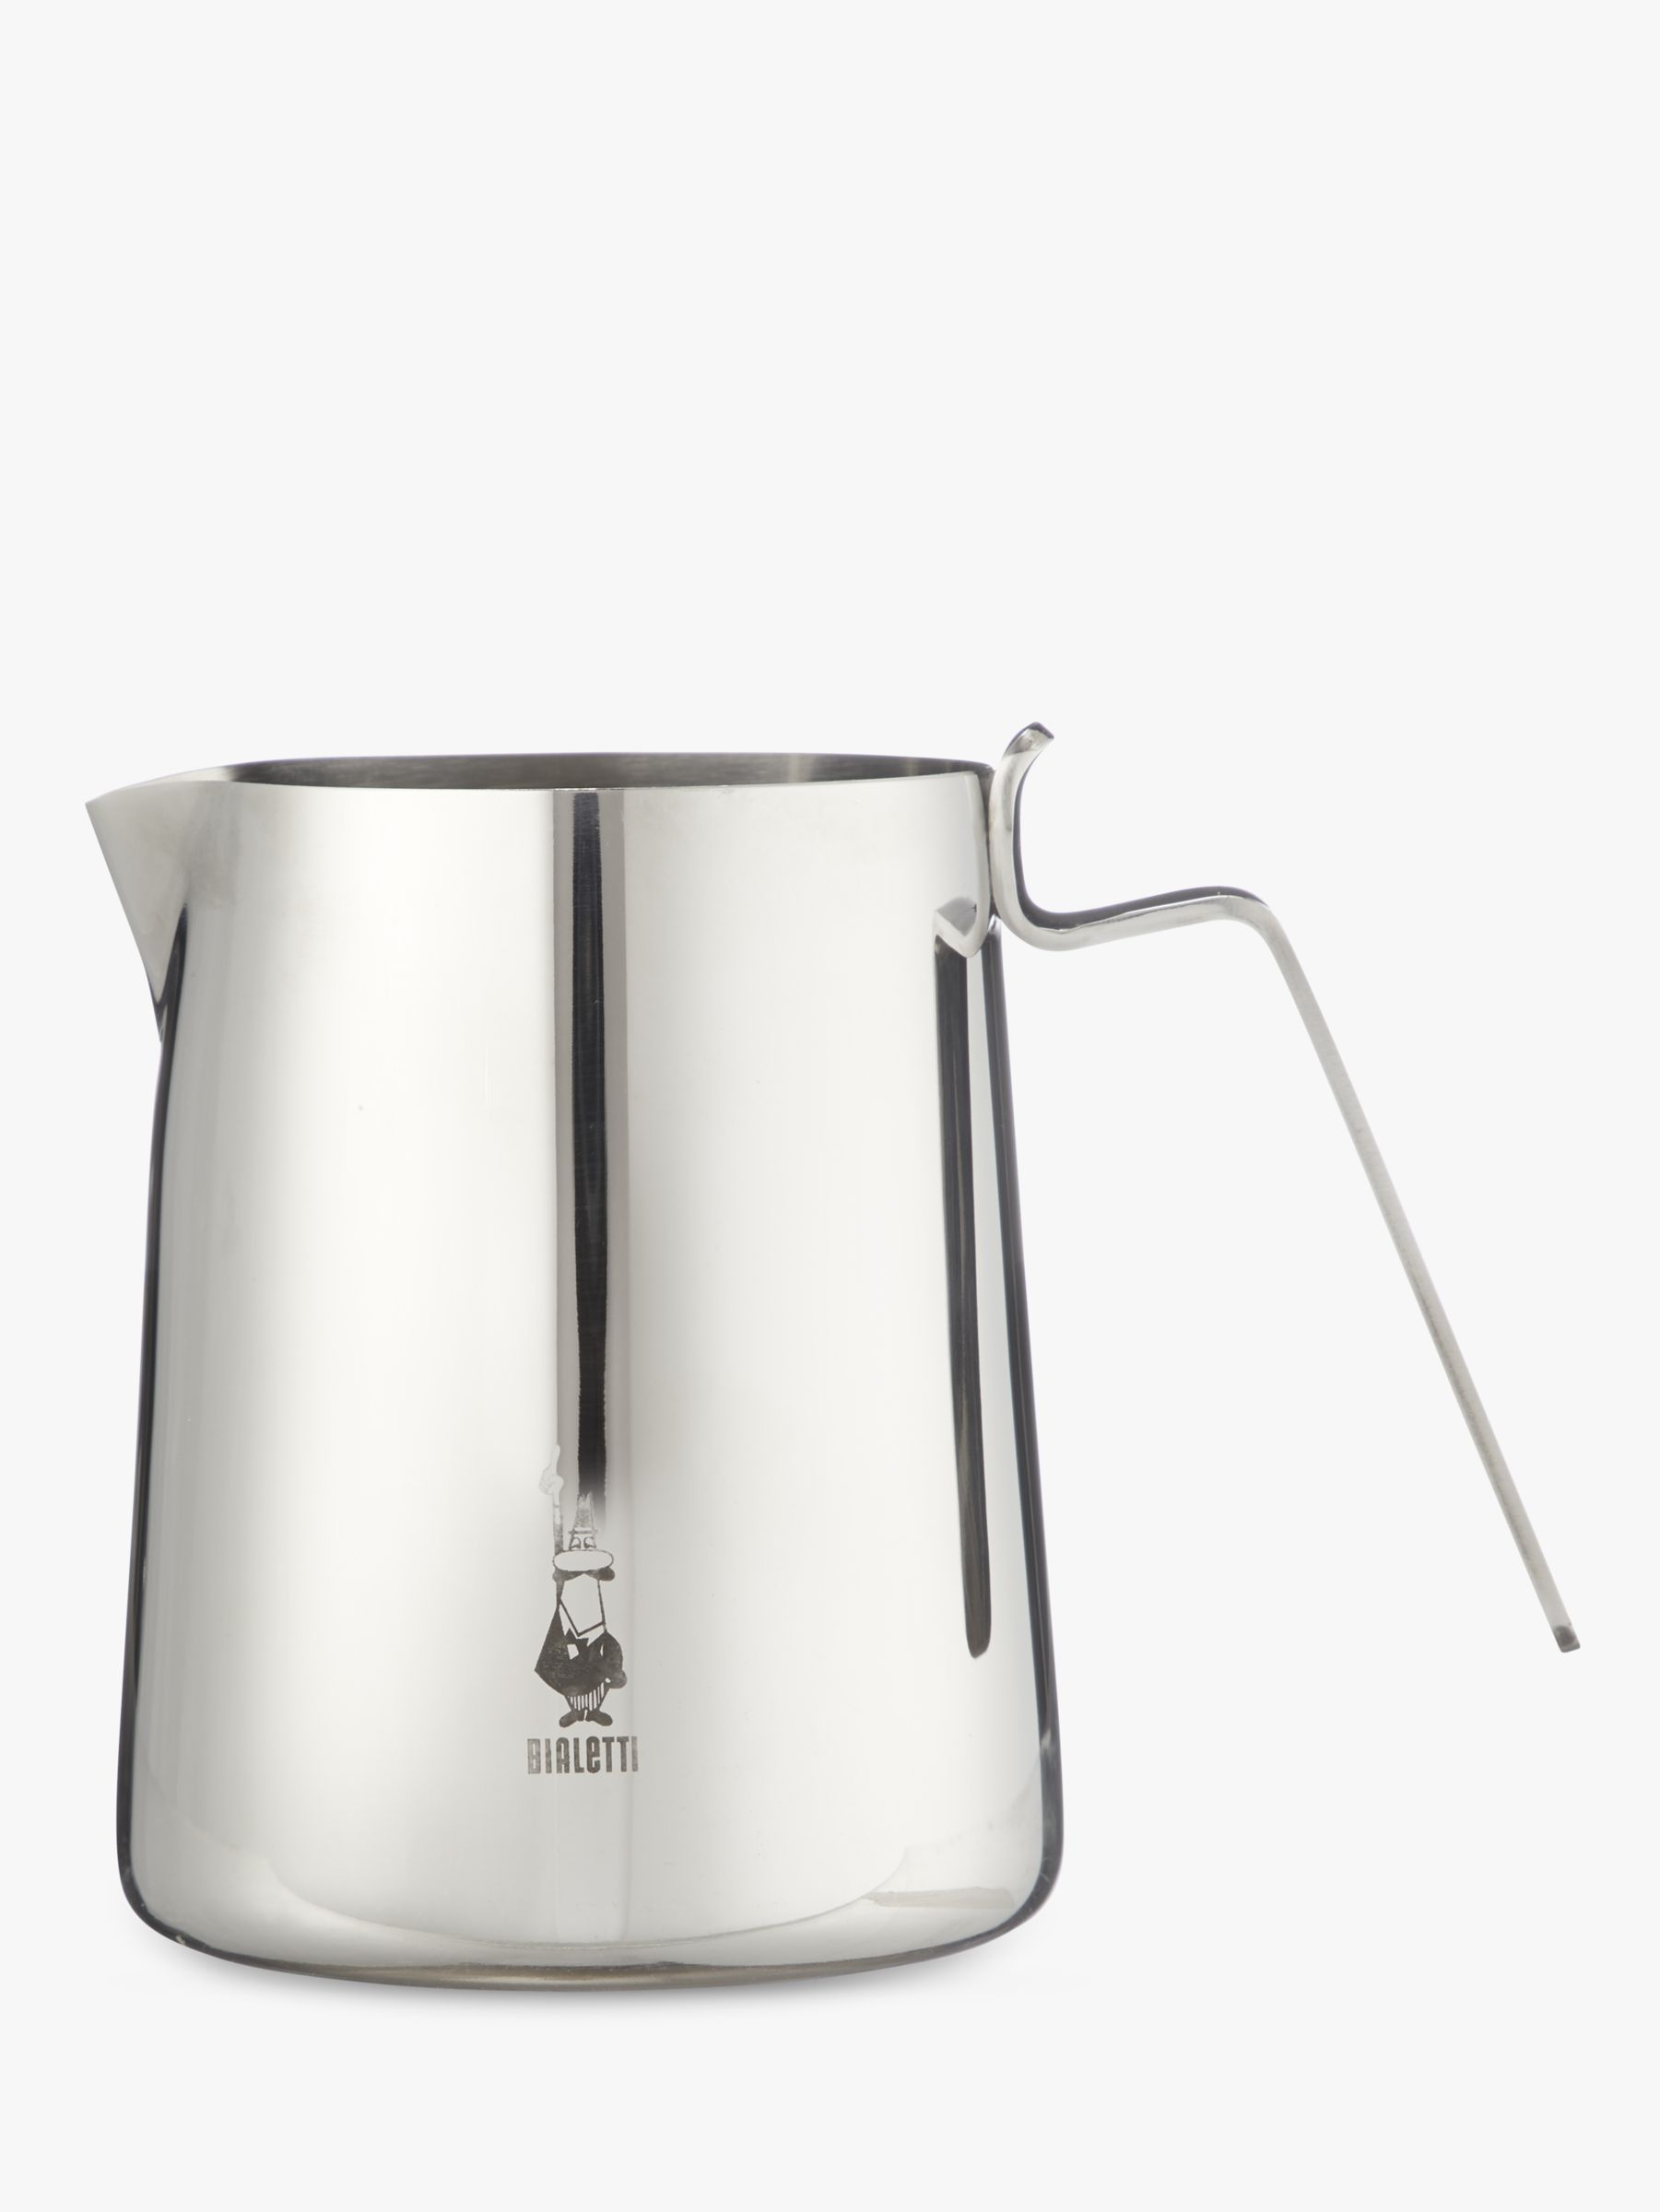 Bialetti Stainless Steel Milk Frothing Pitcher, 500ml